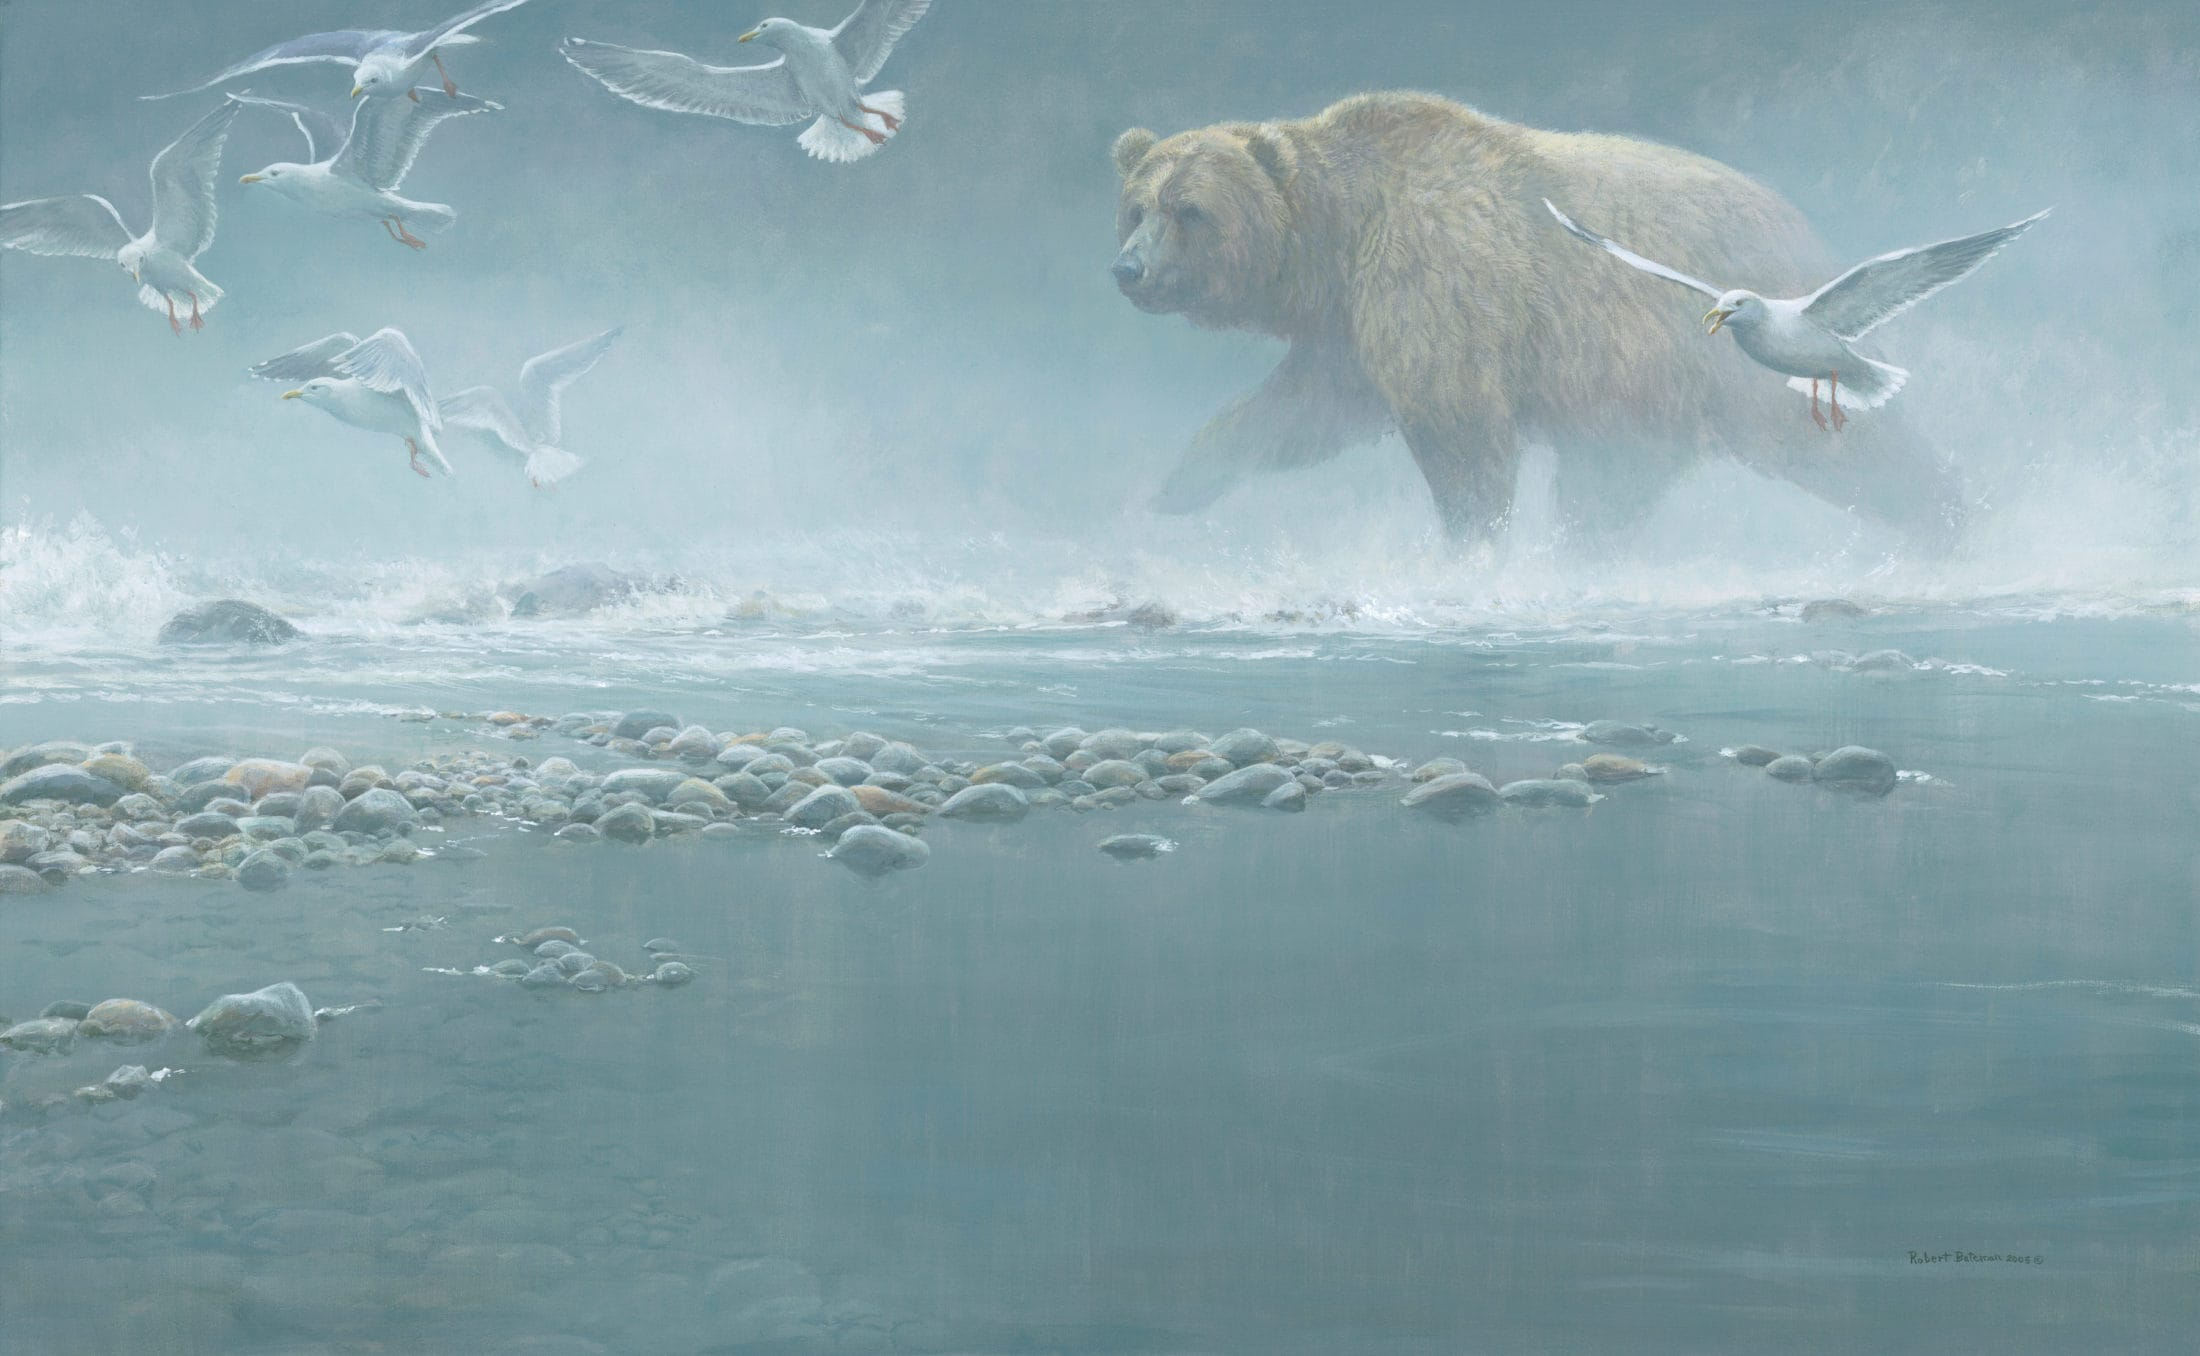 Robert Bateman, Above the Rapids – Gulls & Grizzly